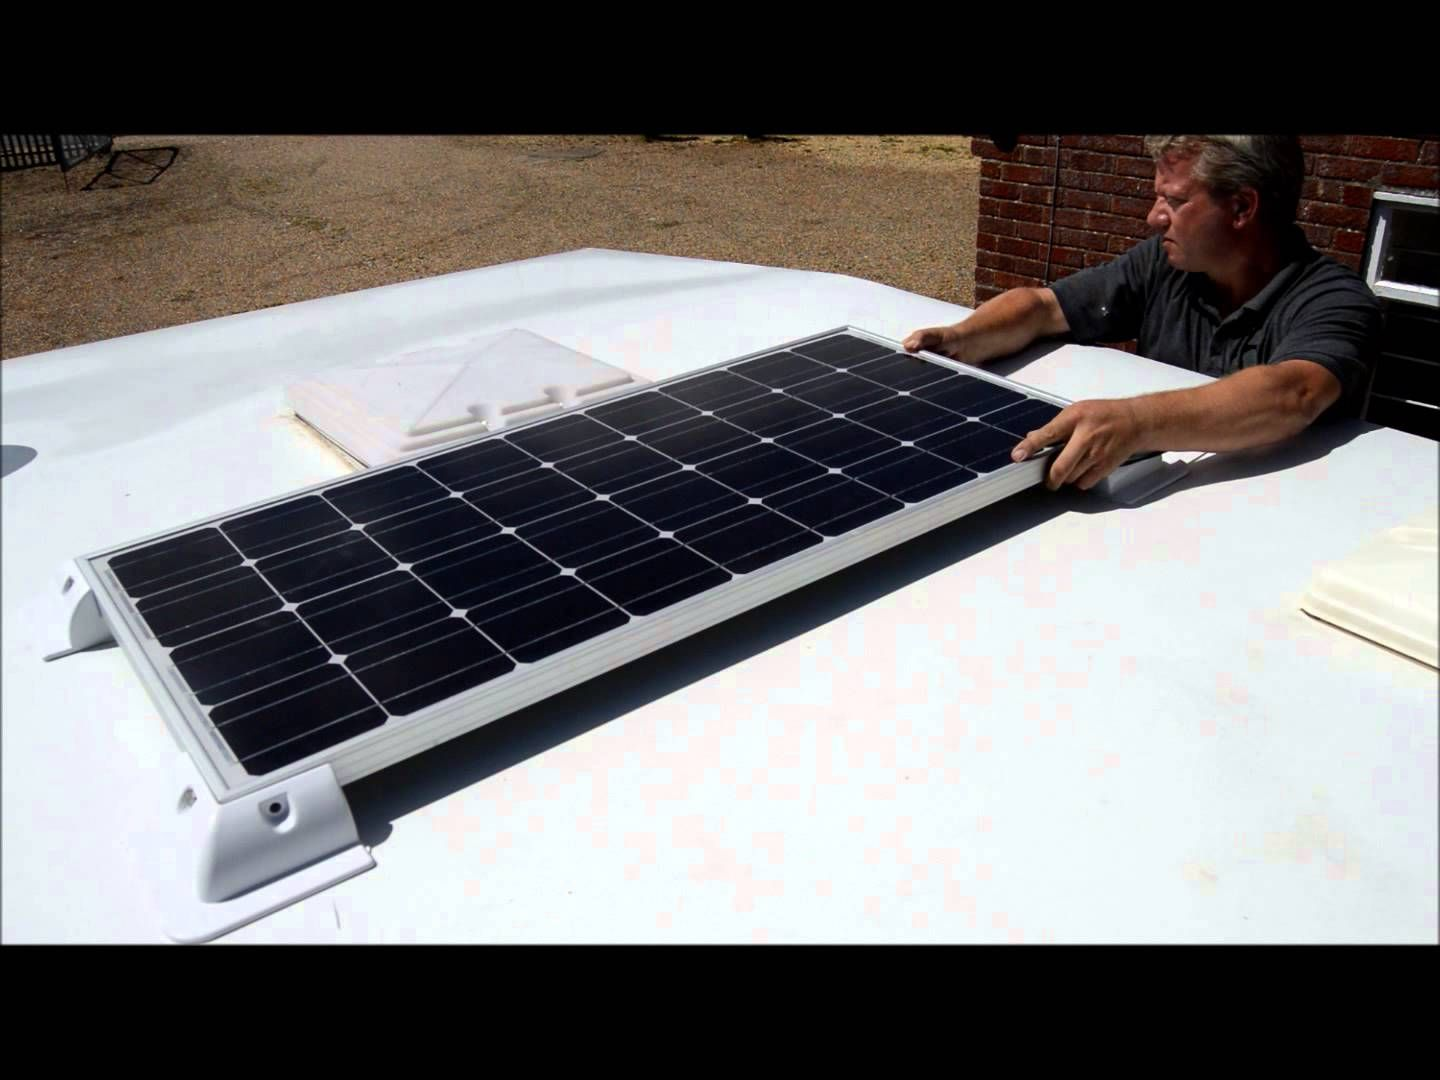 How To Fit An 80w Solar Panel To A Caravan Roof Using Silicon Adhesive Solar Panels Solar Solar Panel Technology